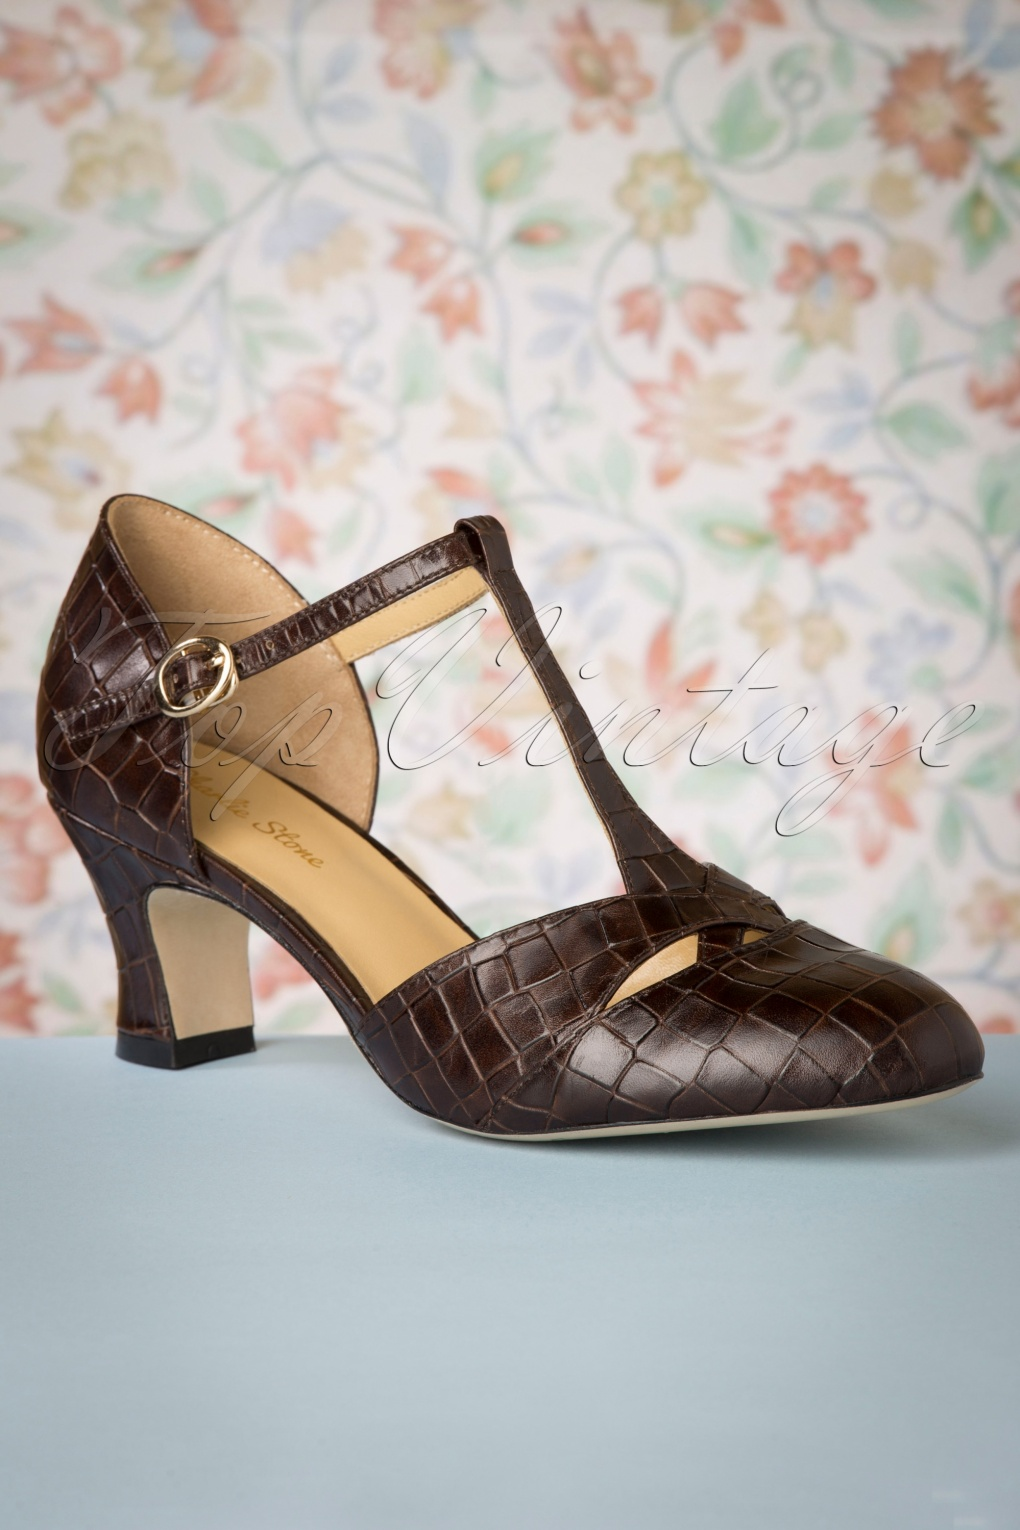 Vintage Heels, Retro Heels, Pumps, Shoes 50s Roma T-Strap Pumps in Espresso £149.70 AT vintagedancer.com